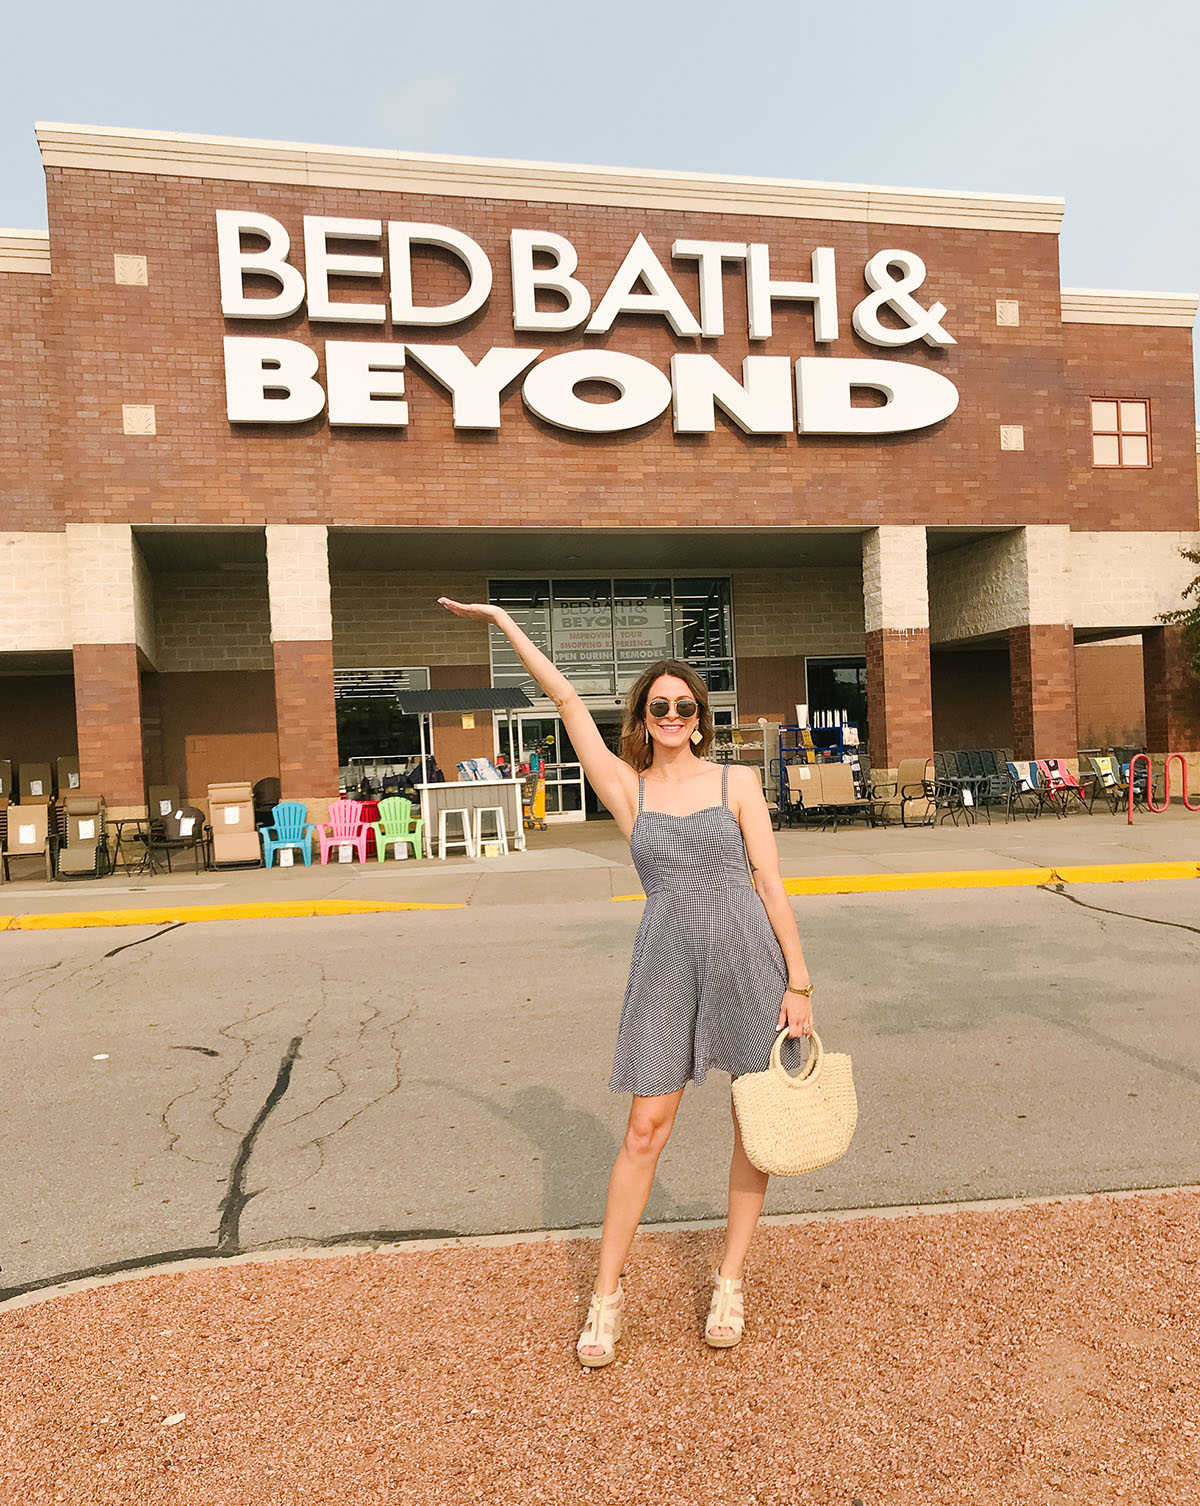 A Whole New Shopping Experience With Bed Bath & Beyond